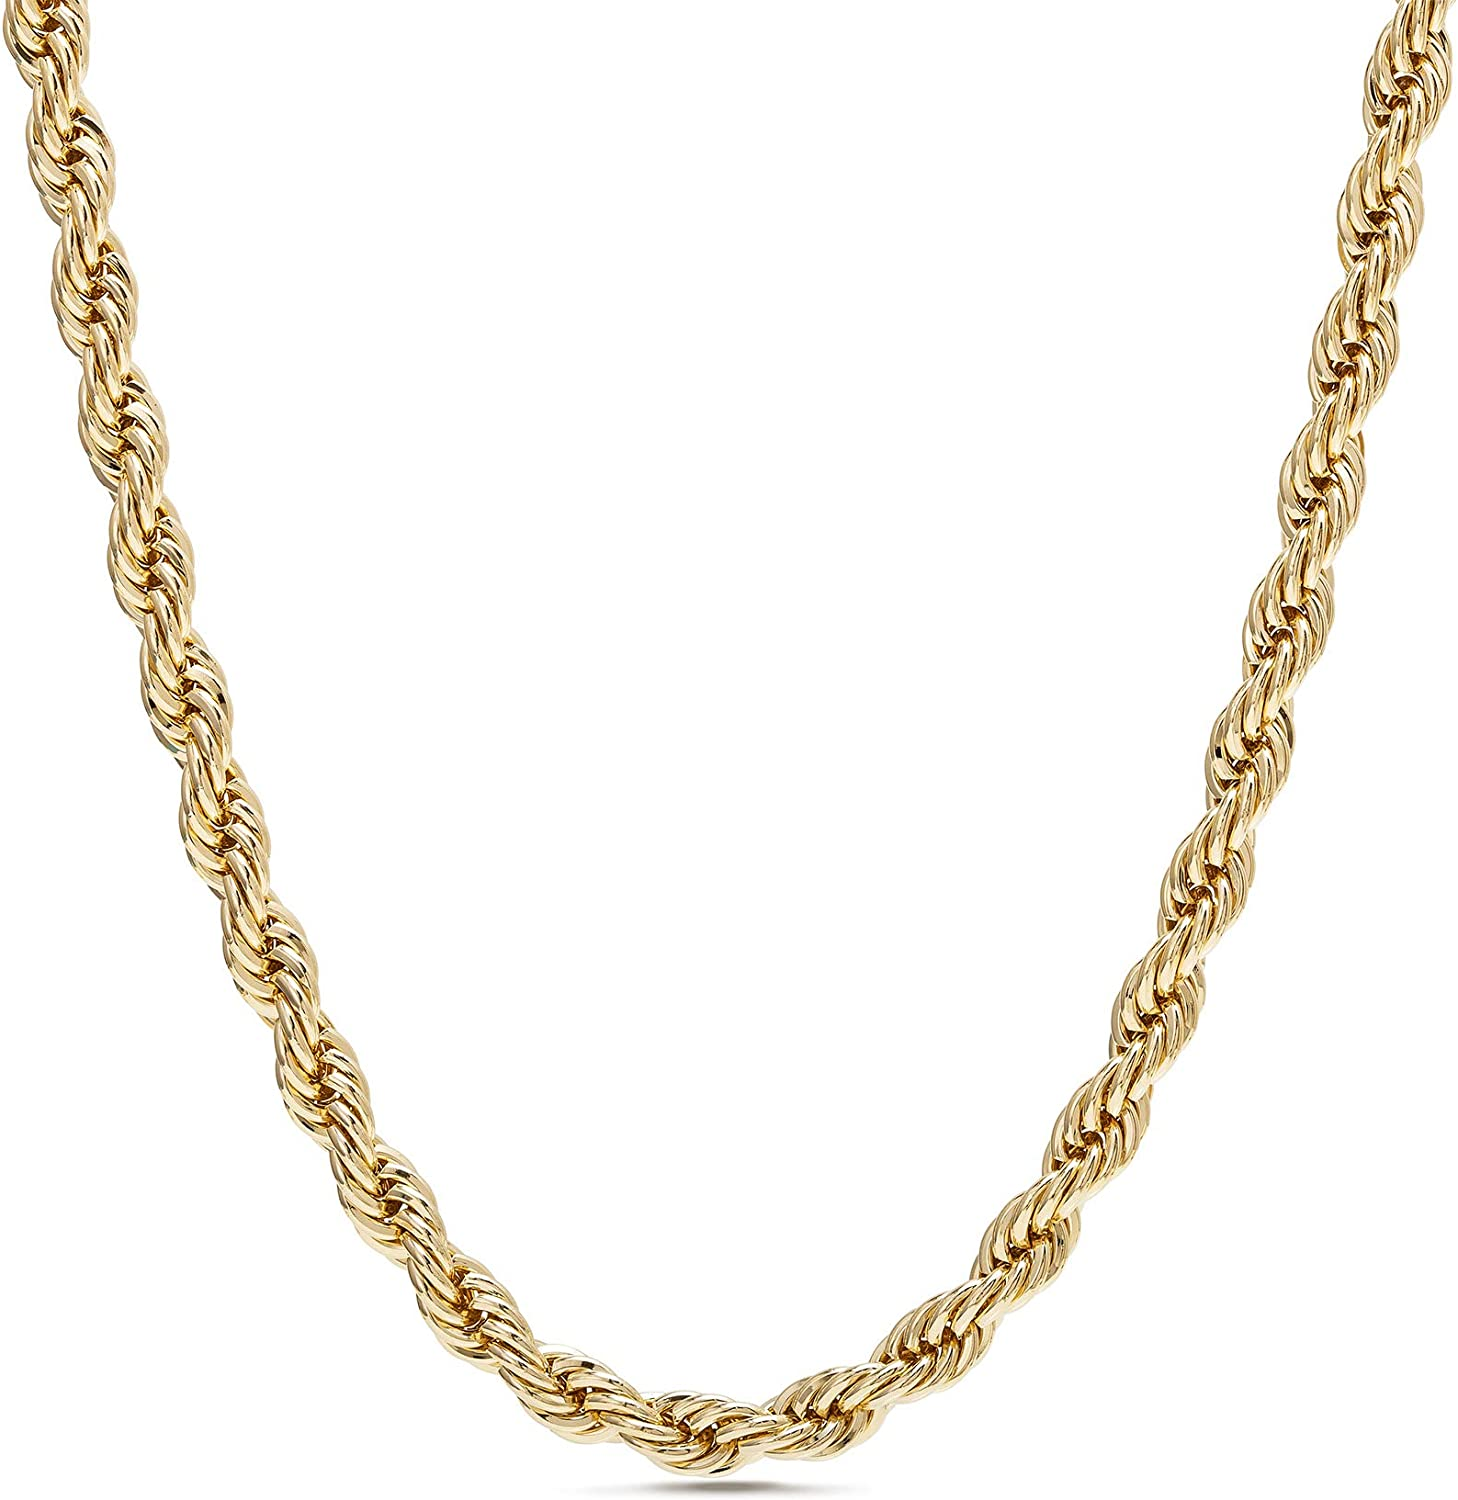 Nautica 2mm - 8mm Rope Chain Necklace for Men or Women in Yellow Gold Plated Brass